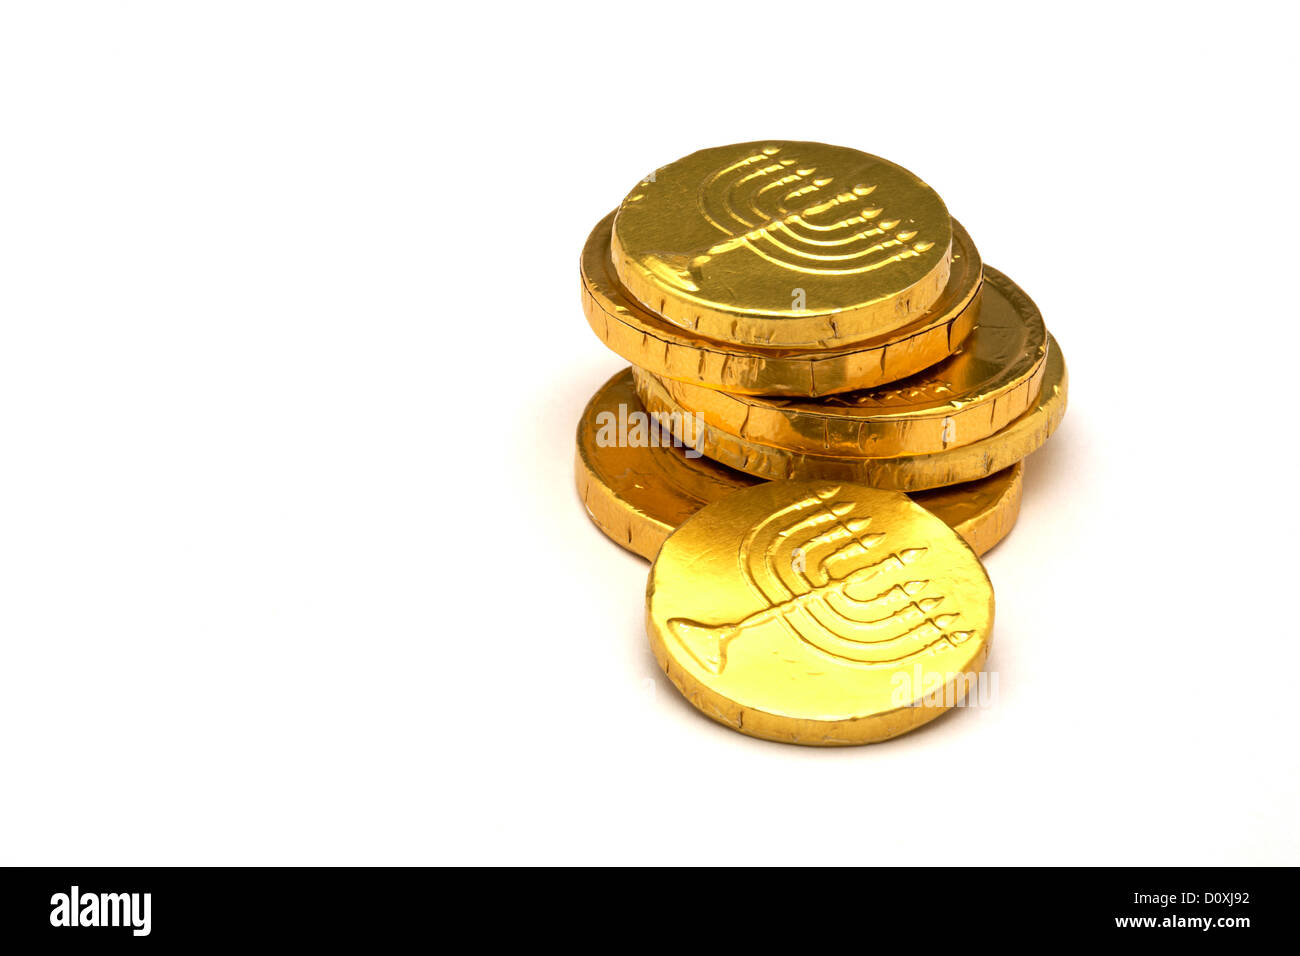 Chocolate Gold Coins wrapped in Gold foil with Jewish Menorah ...